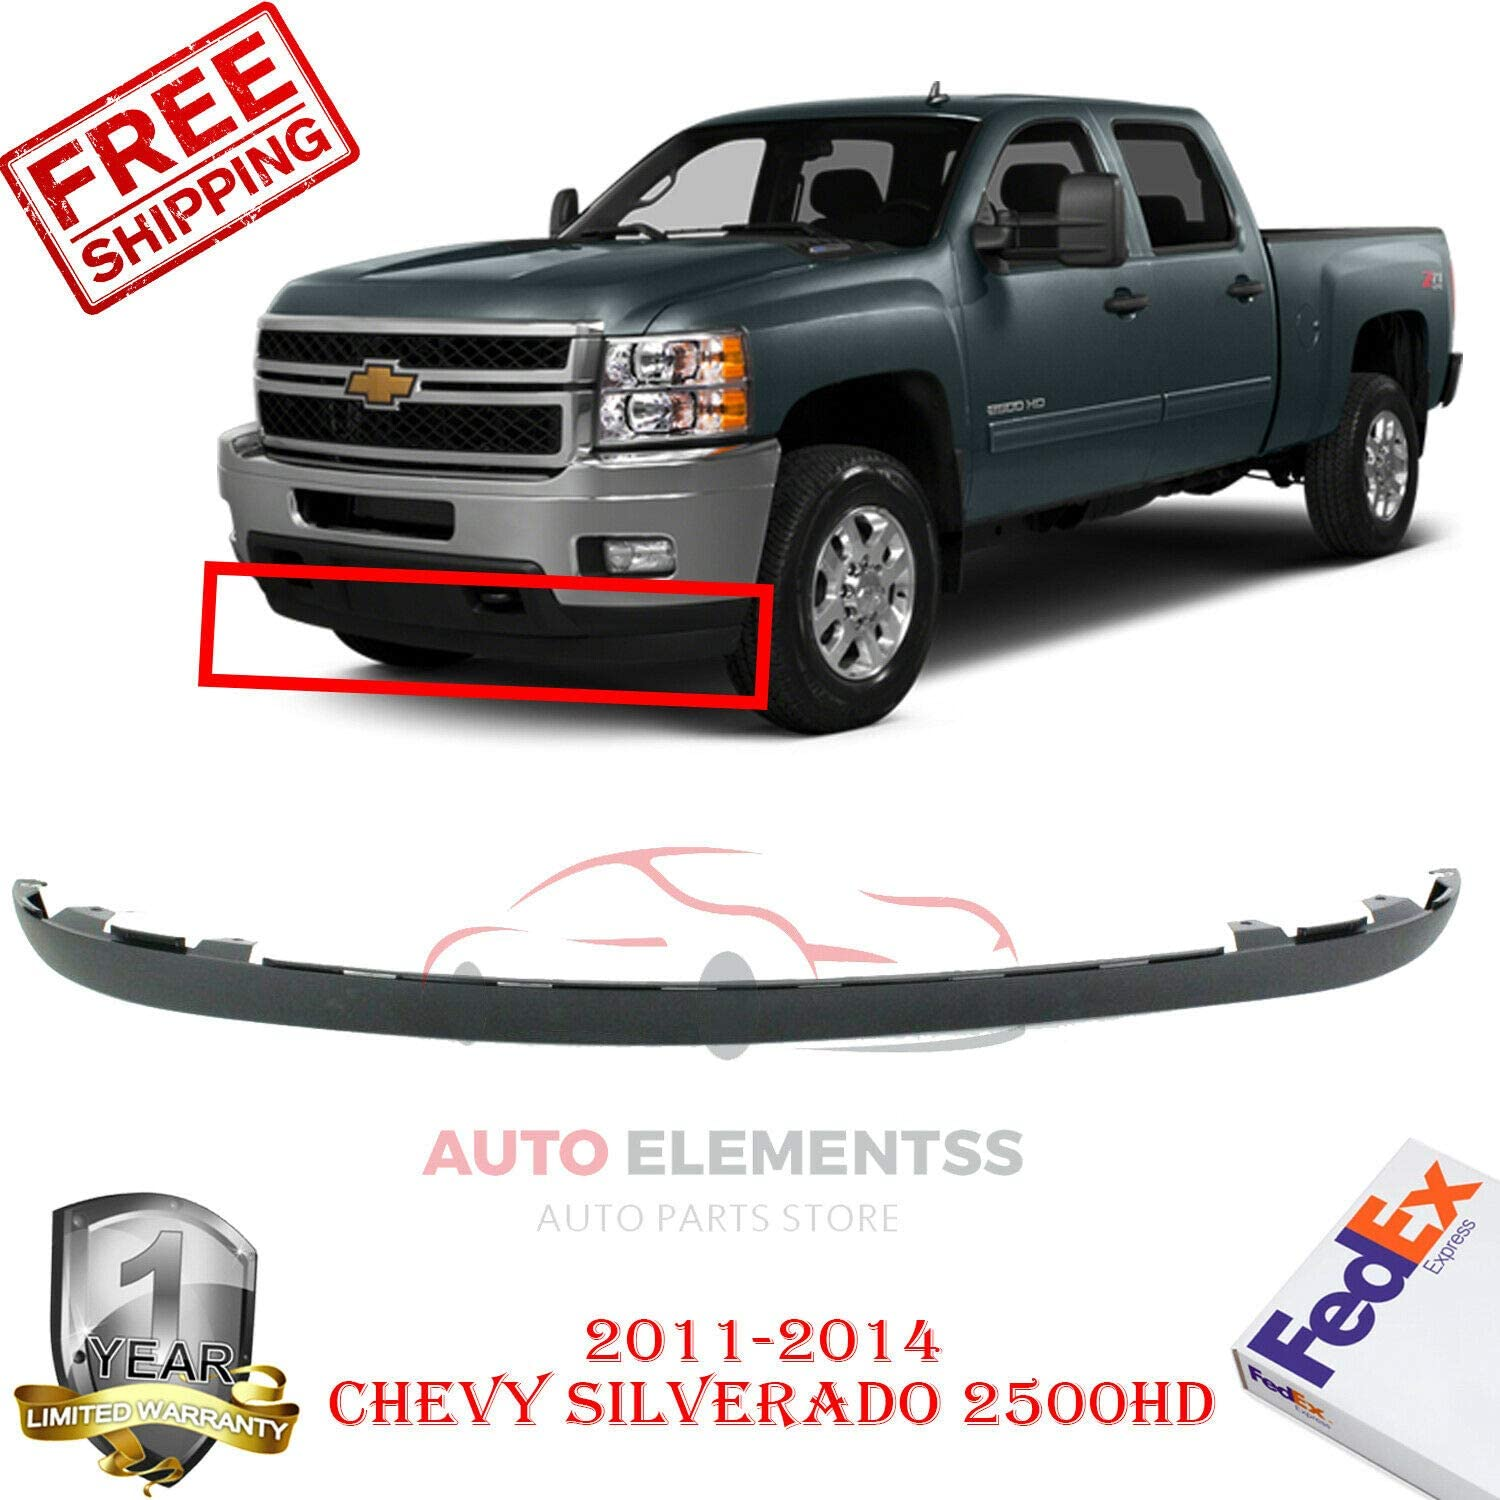 New Front Lower Valance Air Deflector Extension For 2011-2014 Chevrolet Silverado 2500HD 3500HD Textured Direct Replacement Plastic